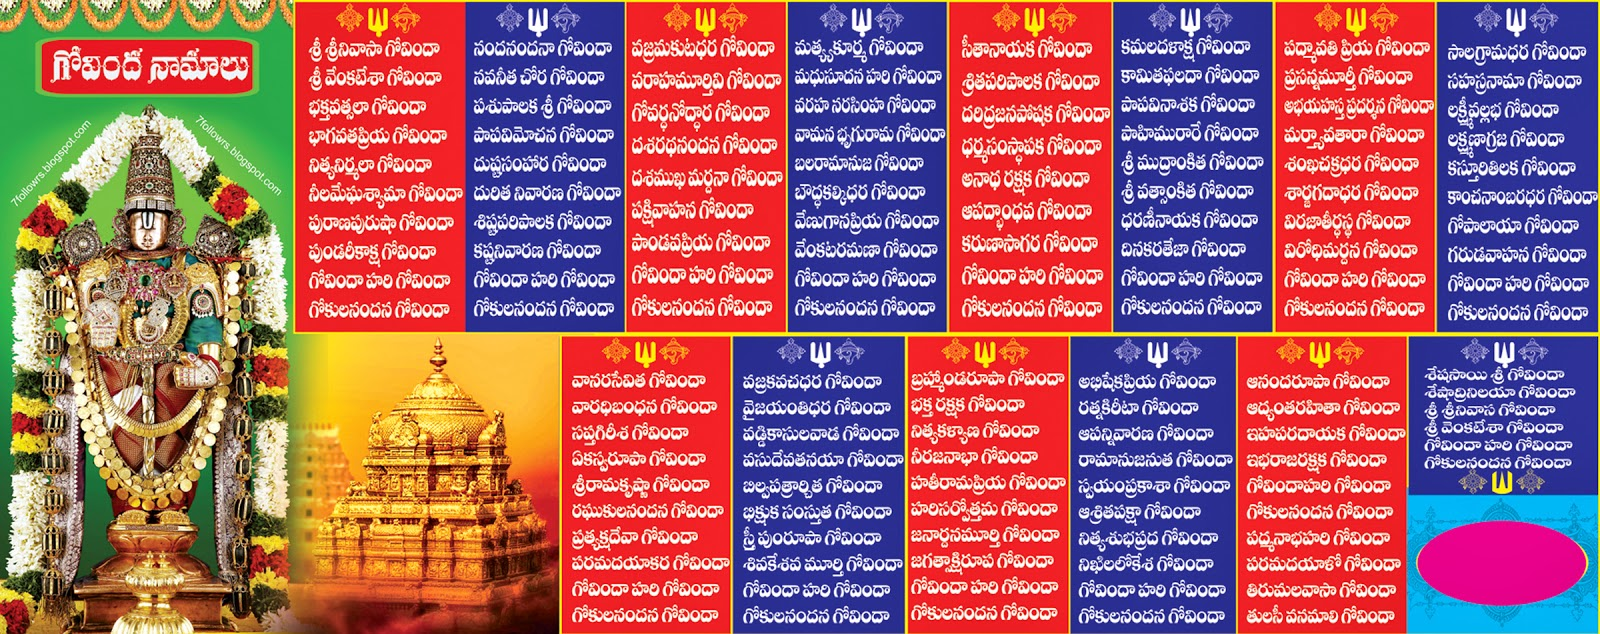 FREE PSD DOWNLOAD ERA: Govinda Namalu in Telugu font.: 7followrs.blogspot.com/2014/05/govinda-namalu-in-telugu-font.html